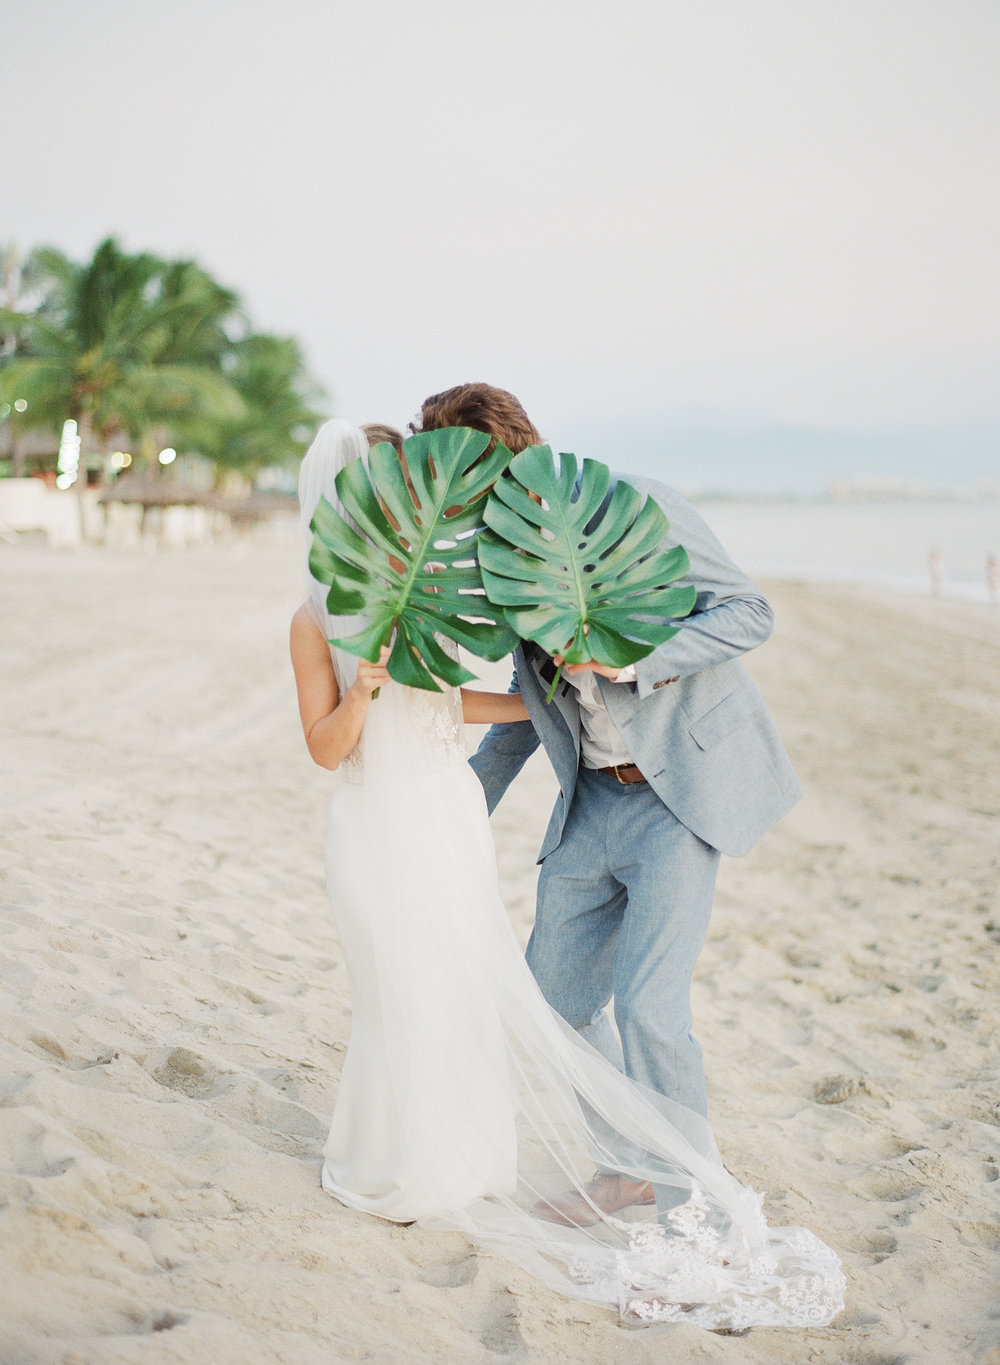 David + David - Sayulita, Mexico